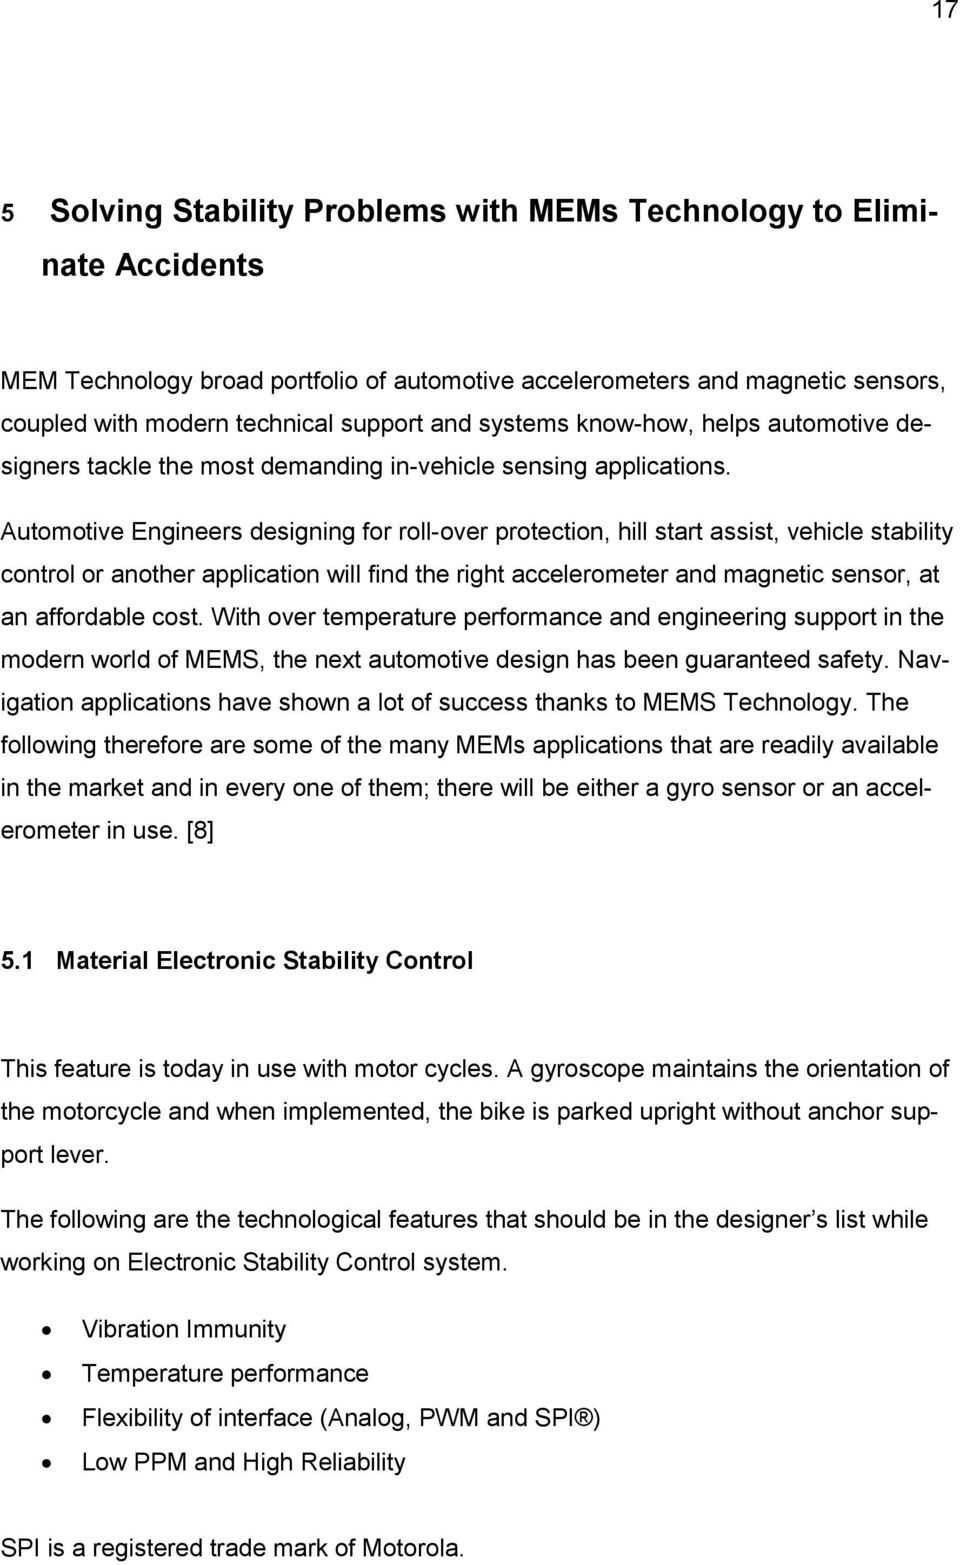 Operation Of Gyro Sensor And 3 Axis Accelerometer Thesis Pdf Mems Gyroscope To Improve Car Gps Navigation System Performance Automotive Engineers Designing For Roll Over Protection Hill Start Assist Vehicle Stability Control